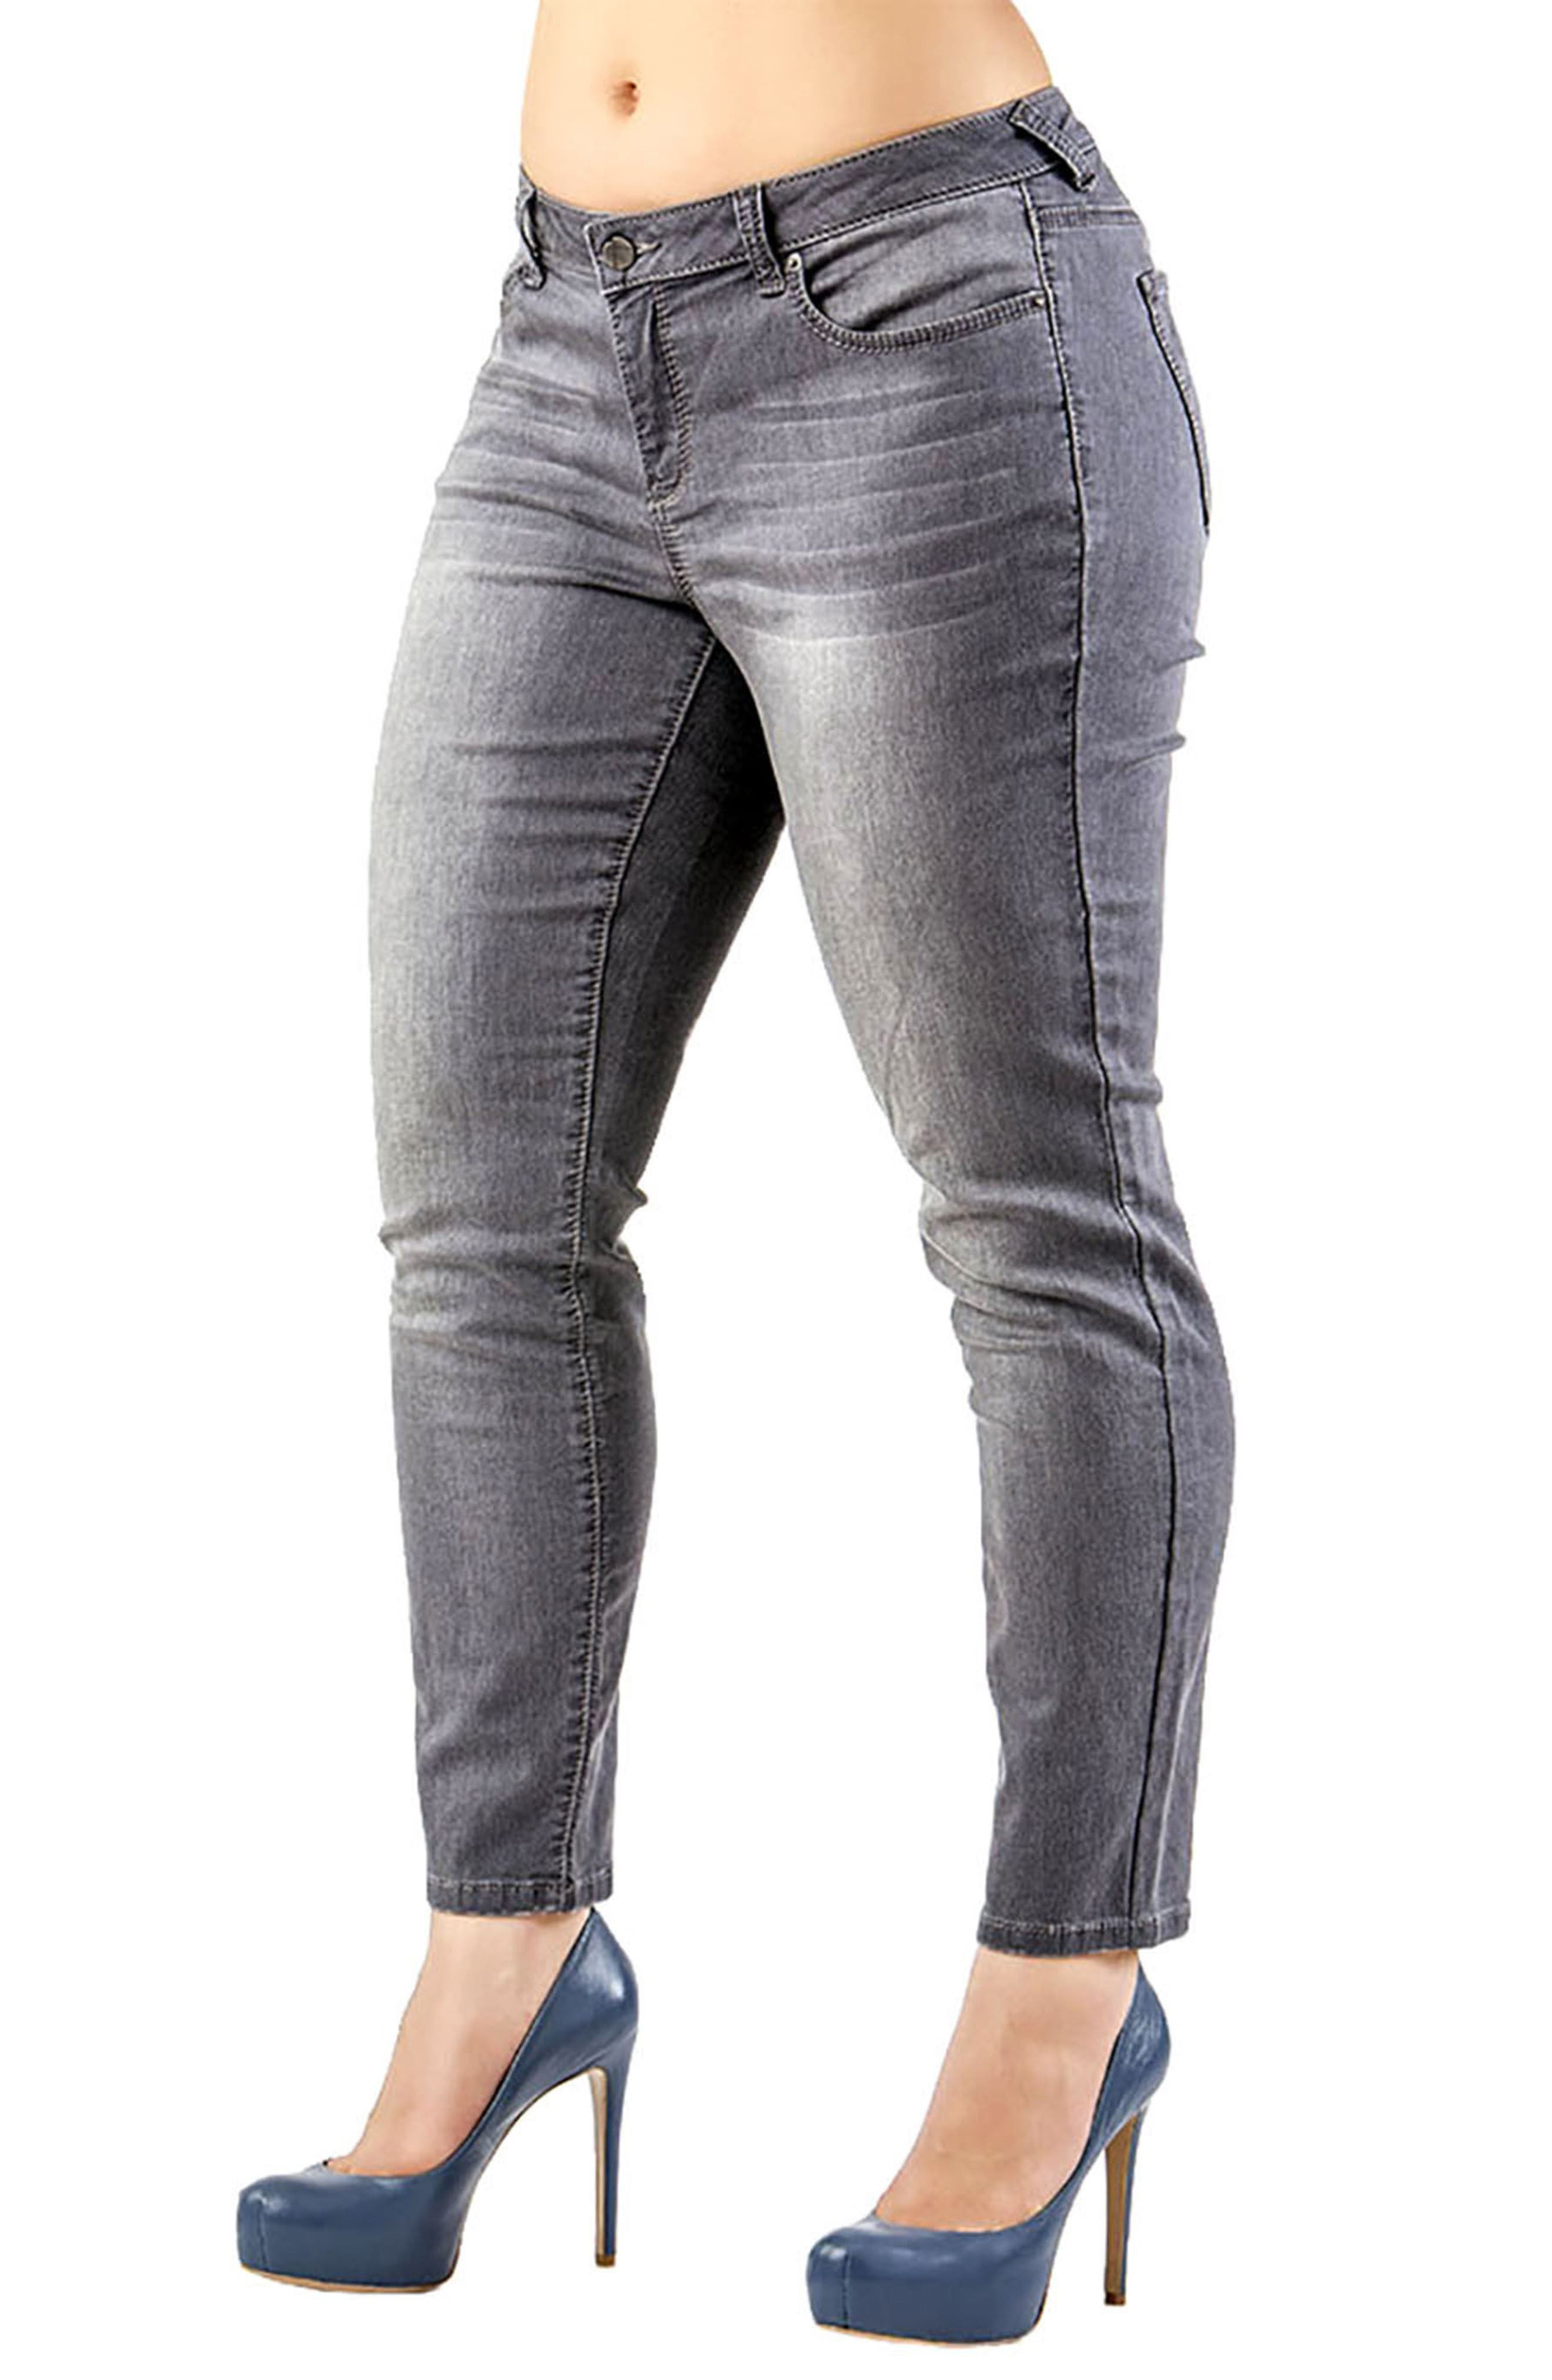 Alternate Image 1 Selected - Standards & Practices Minnie Stretch Denim Skinny Jeans (Plus Size)